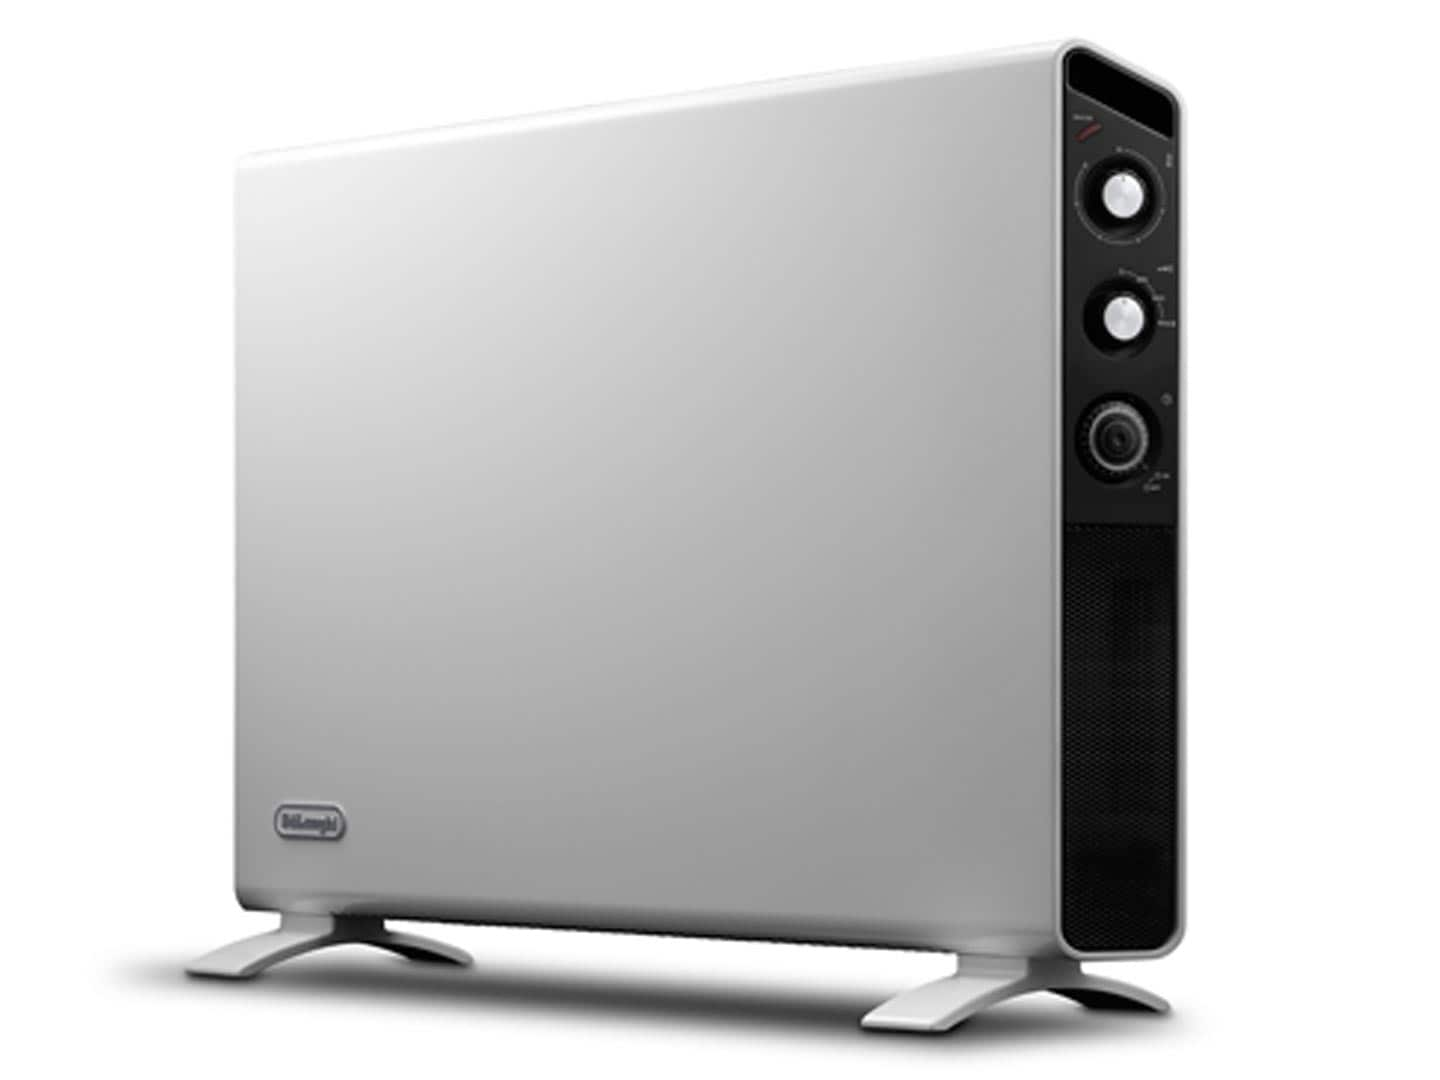 panel convector heaters portable heating delonghi hcx3216fts panel heater